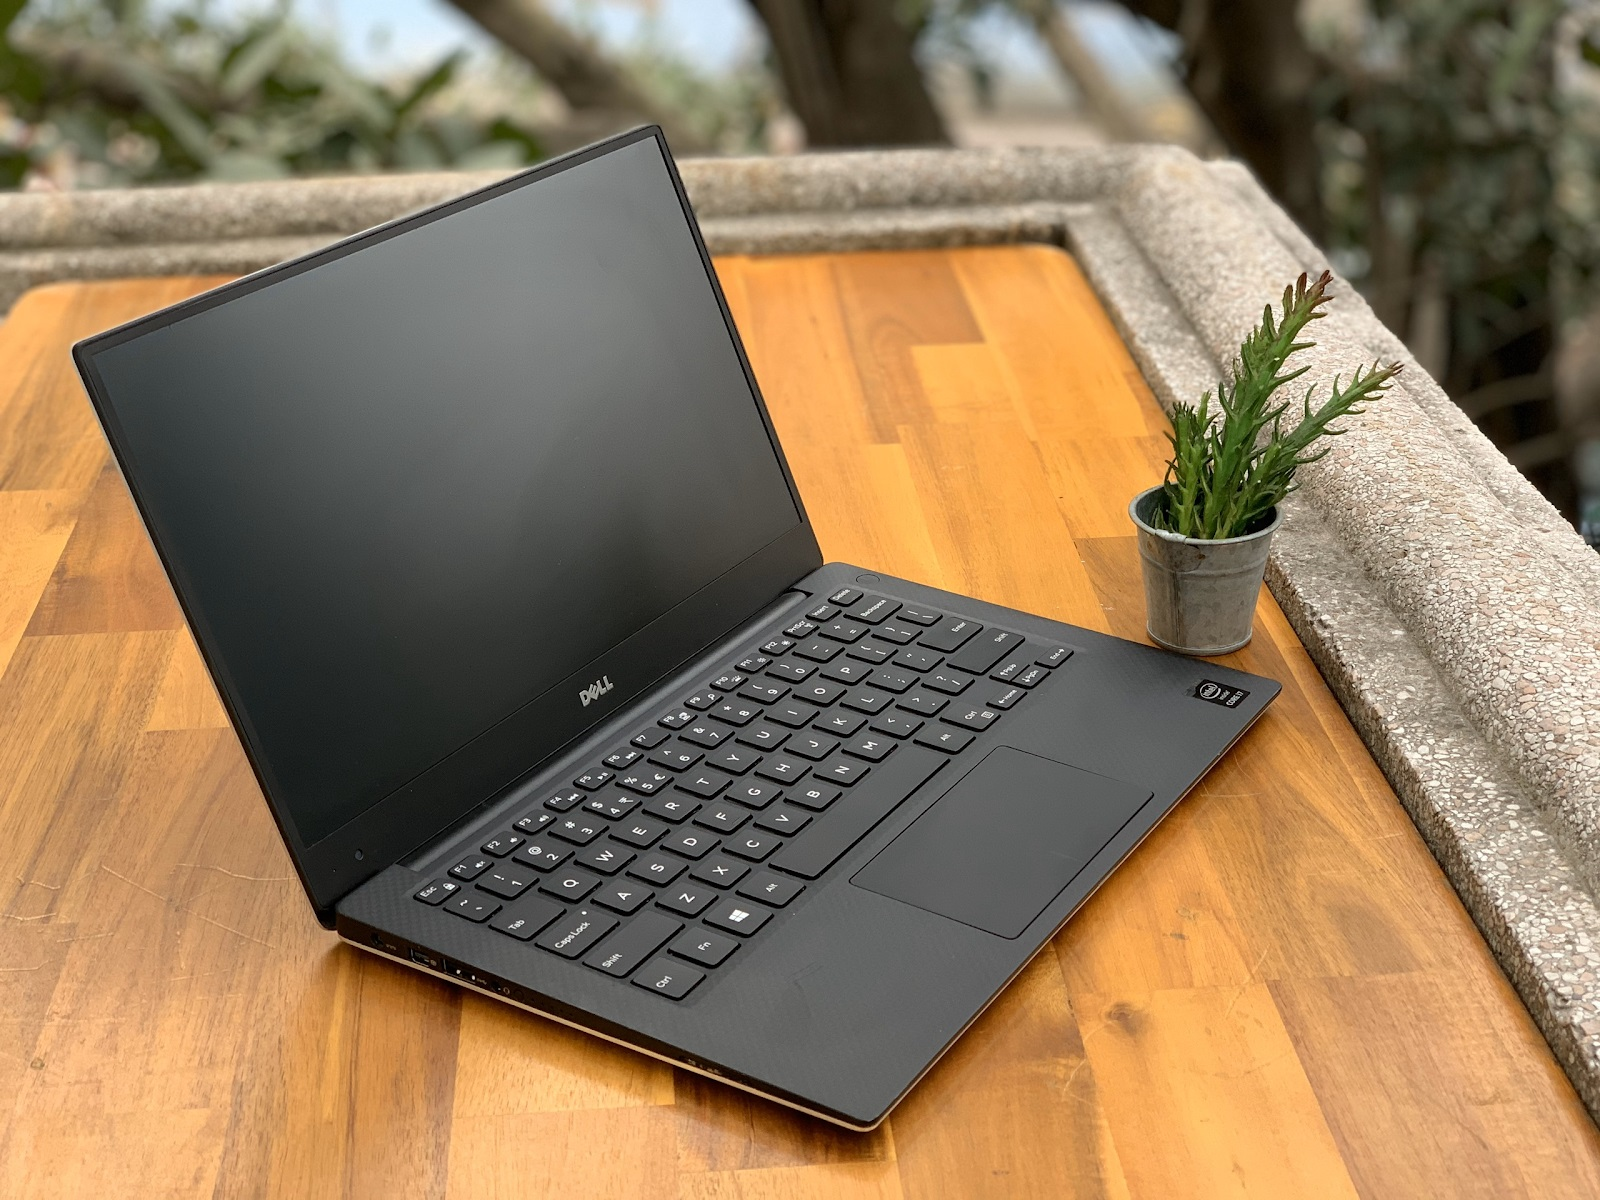 dell.xps 15